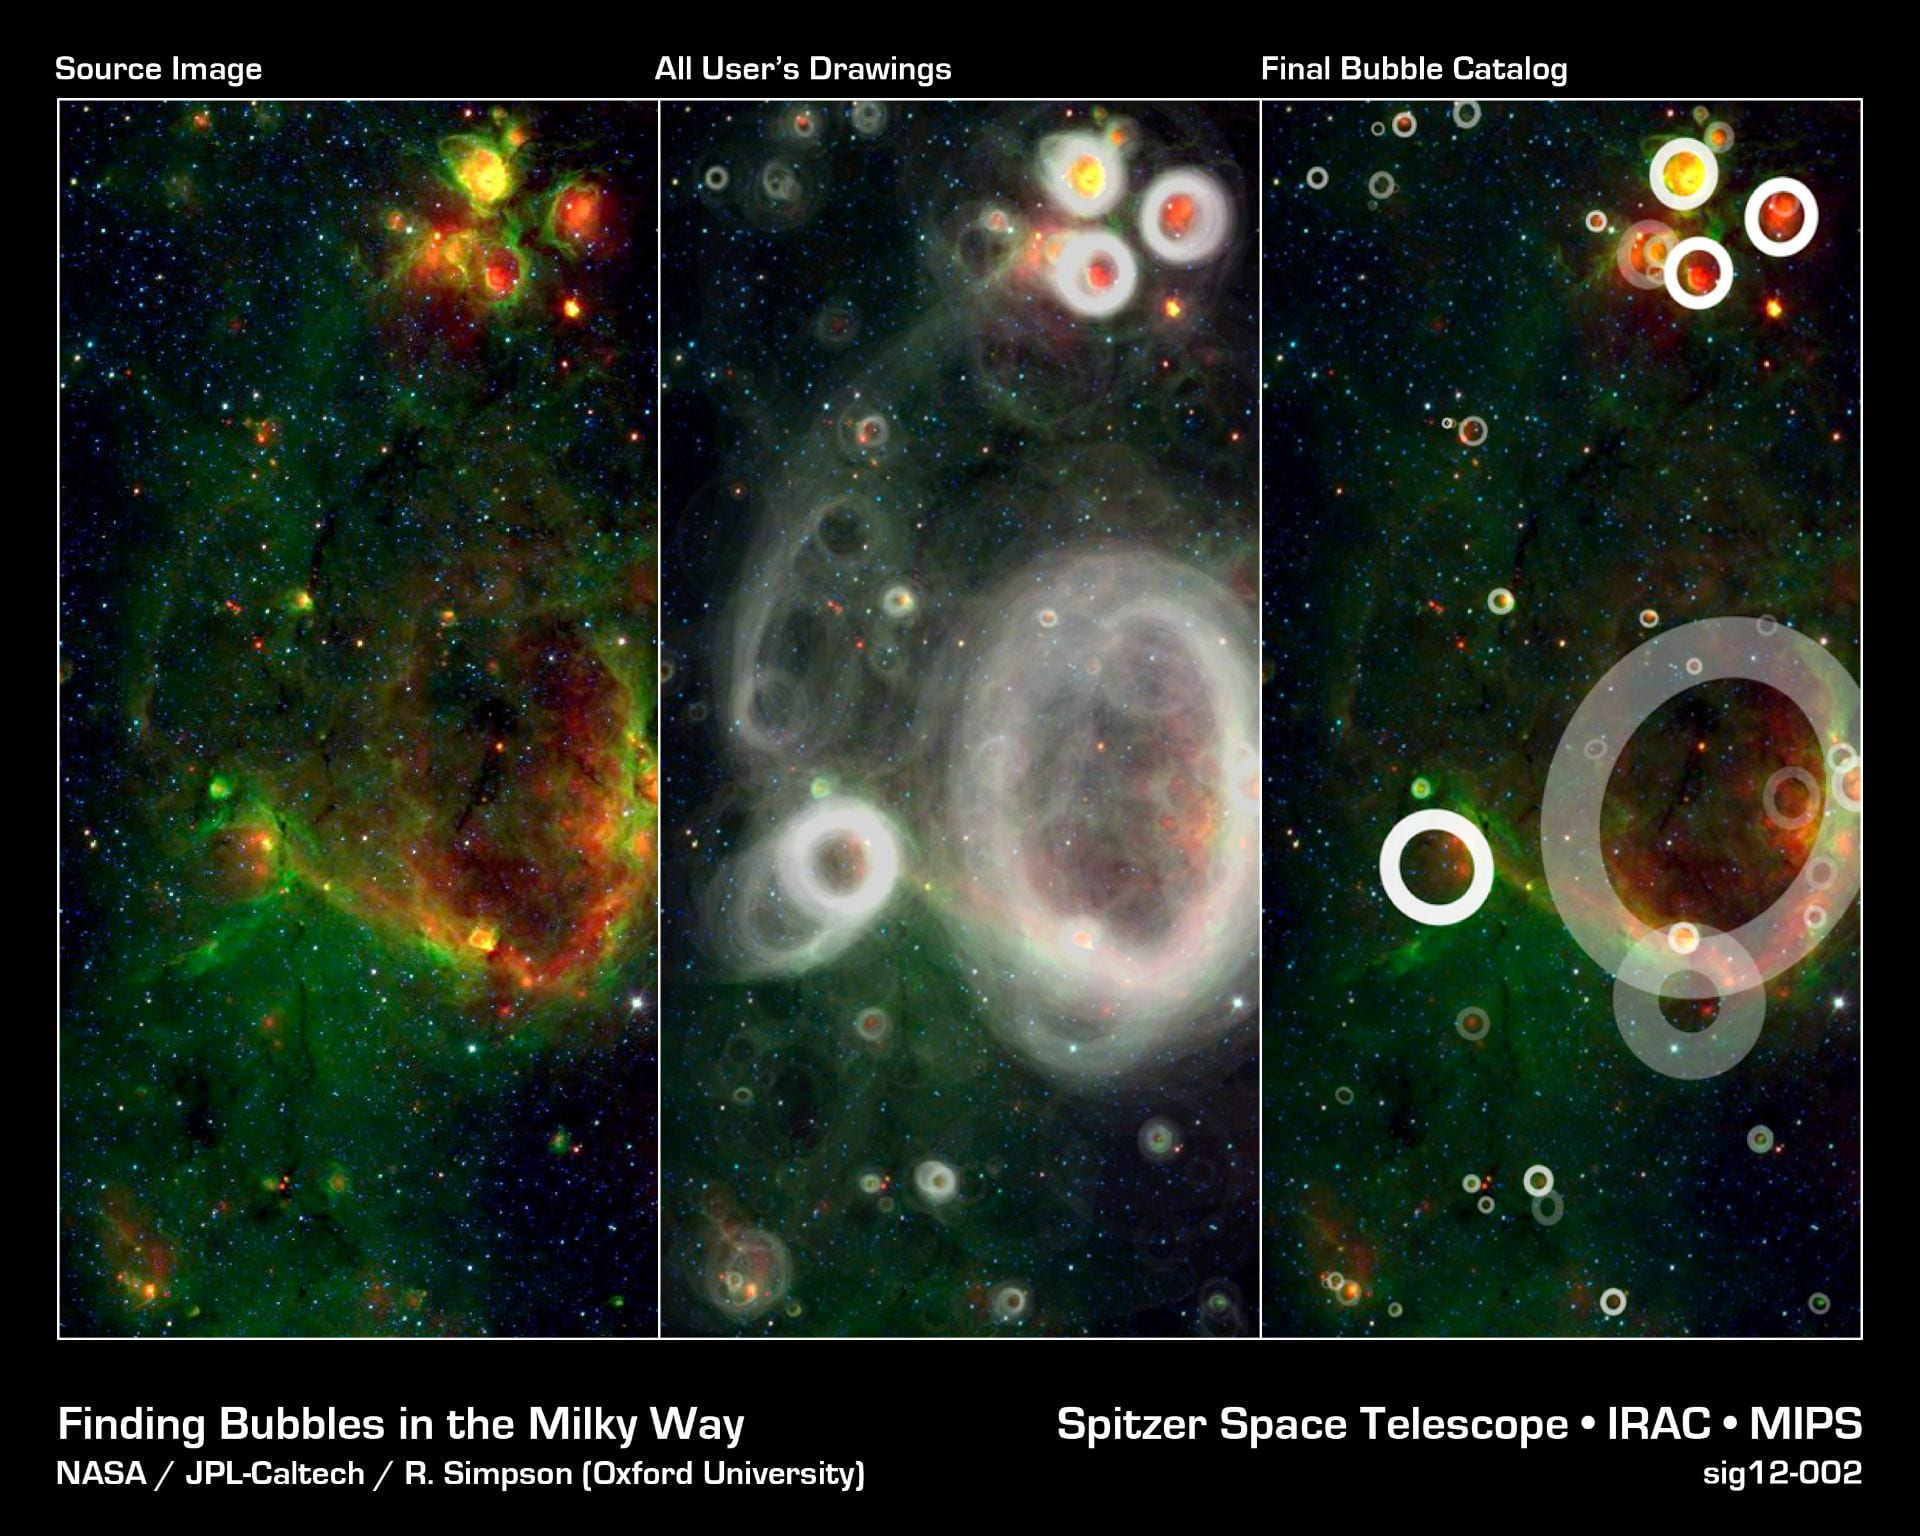 An image of a wispy nebula in our galaxy, mainly green against a black sky. The middle panel marks all user's drawings of where bubbles are, and the right panel marks the final confirmed bubbles.